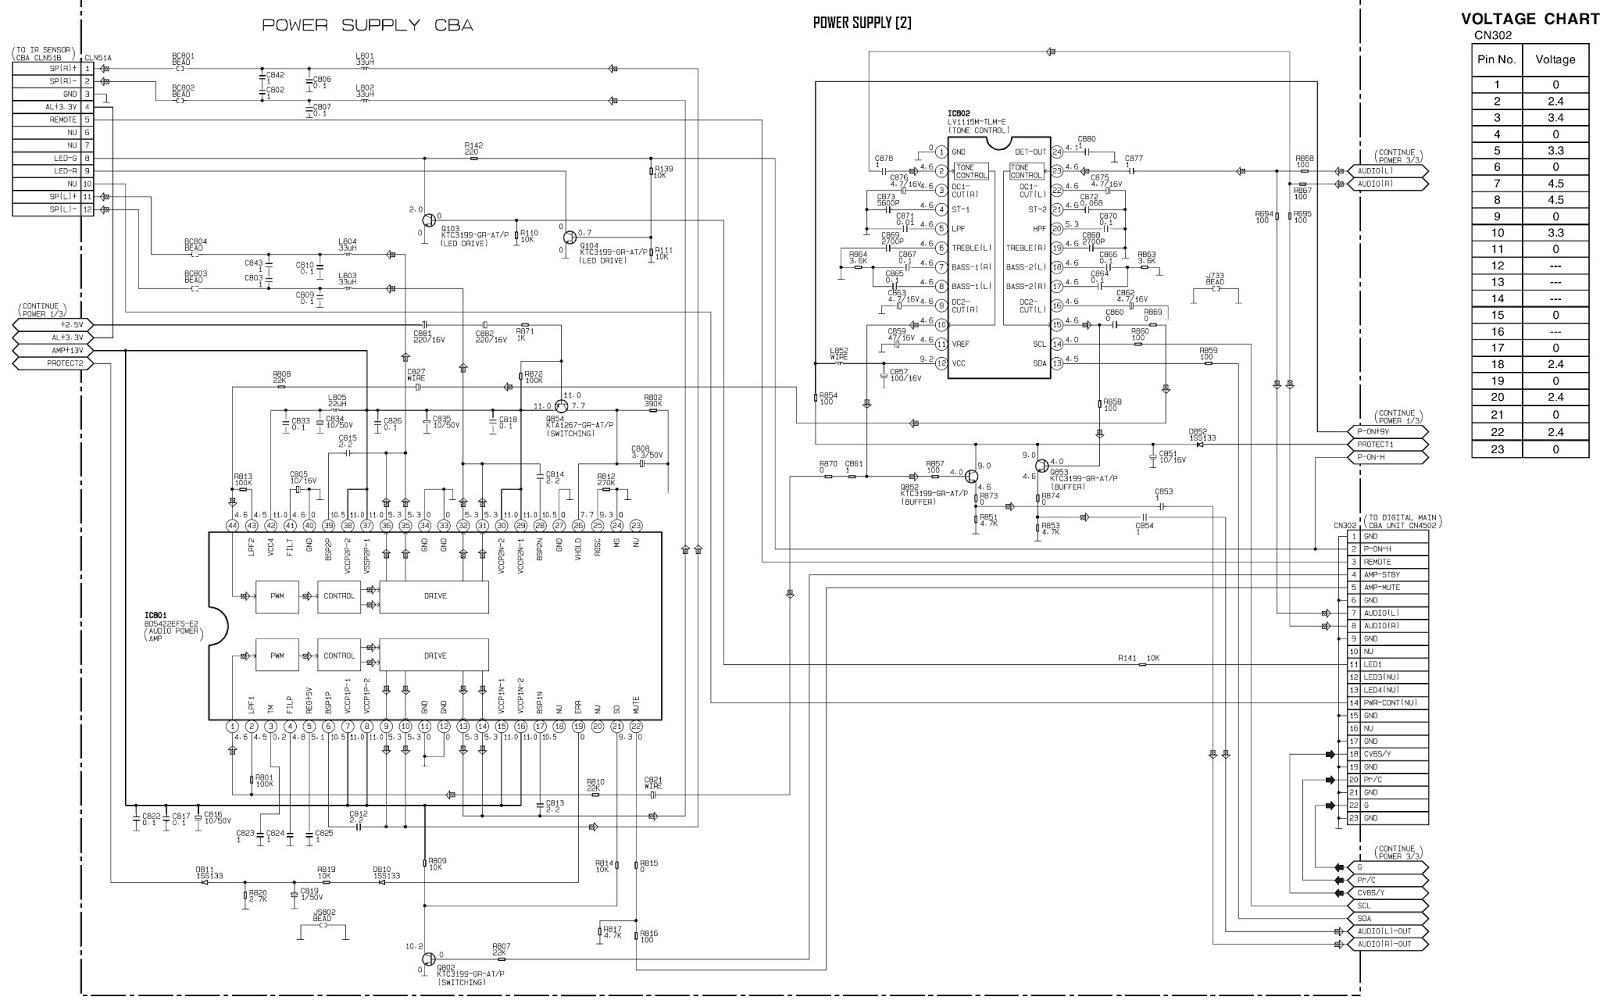 panasonic refrigerator wiring diagram with Microwave Power Supply Schematics on Electrolux 2100 Vacuum Wiring Diagrams Schematics moreover Samsung Refrigerator Wiring Diagram further Skema Rangkaian Stabilizer Power Supply likewise G E Jbp75wy1 Wiring Diagram in addition Wire 3 Way Switch Guitar.